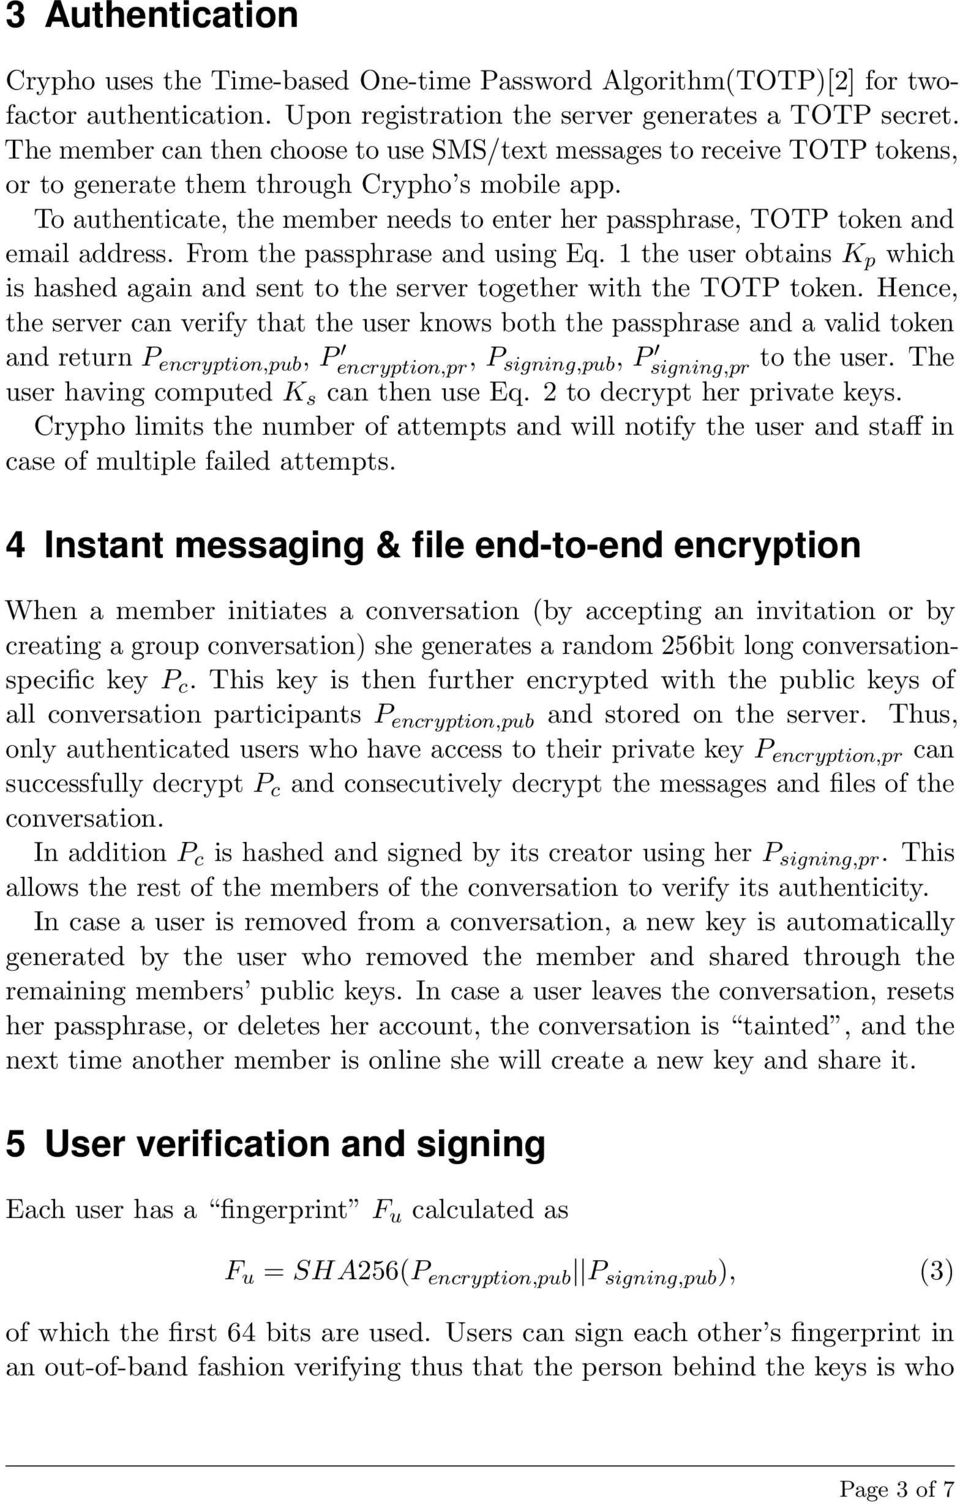 To authenticate, the member needs to enter her passphrase, TOTP token and email address. From the passphrase and using Eq.